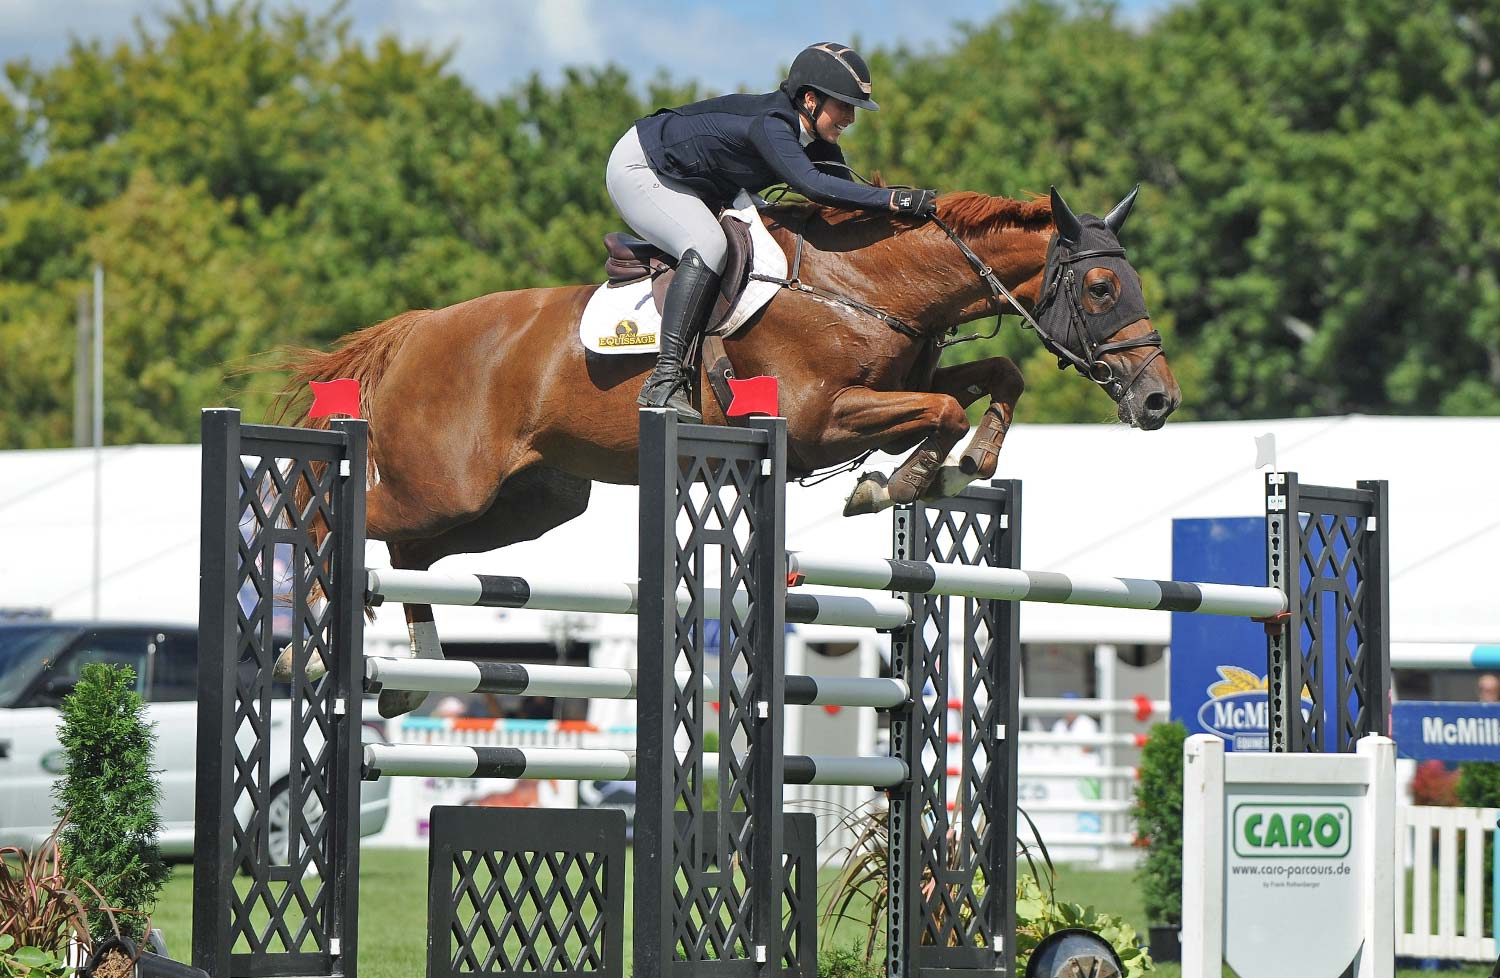 Welcome comeback for Samantha Morrison in Land Rover Horse of the Year..